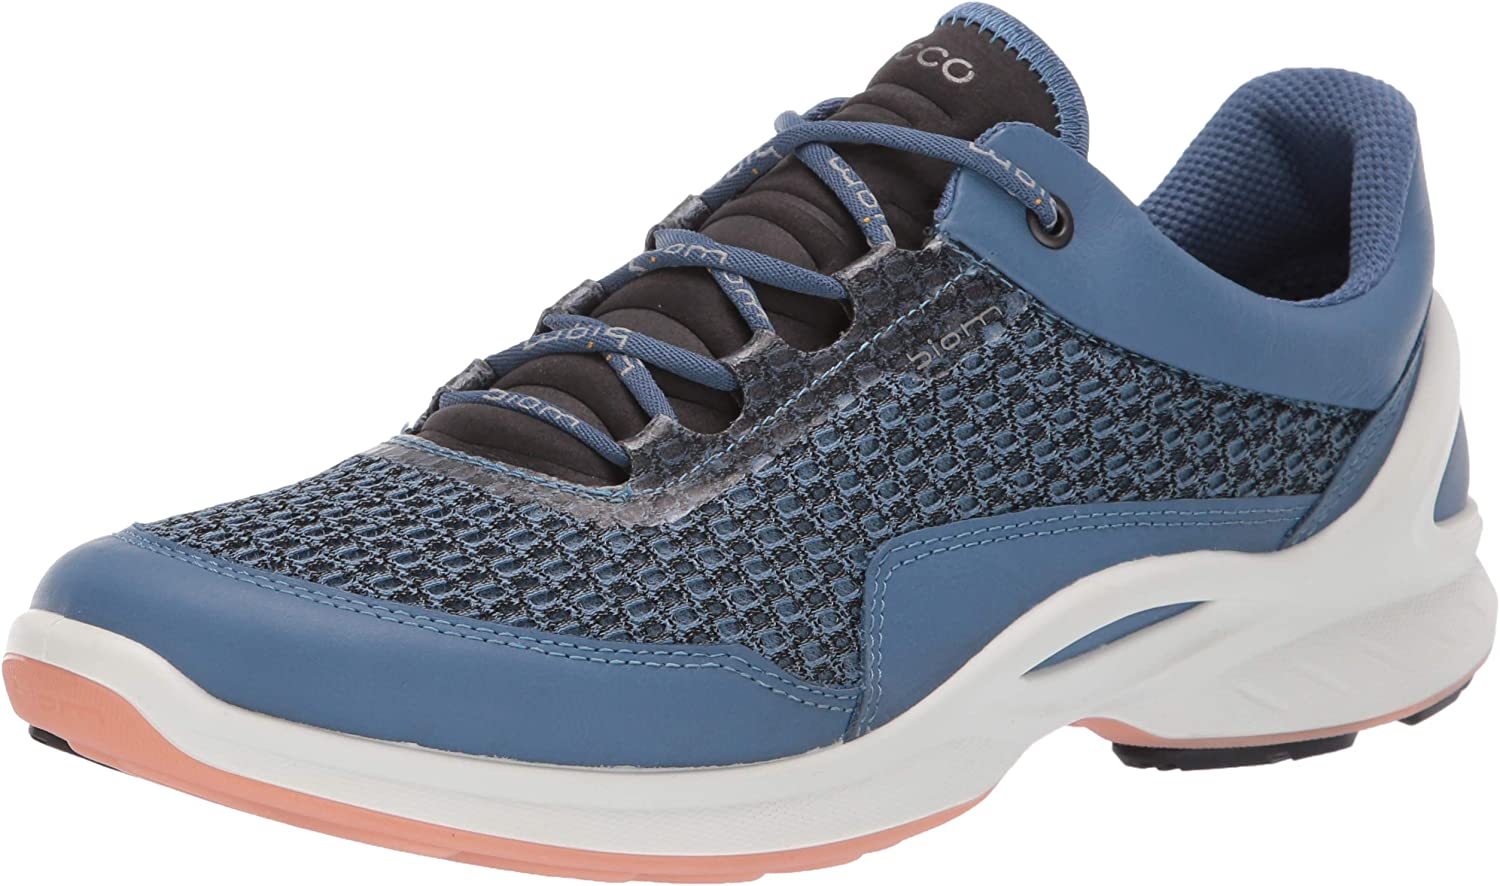 ECCO Womens Biom Fjuel Racer Running shoes